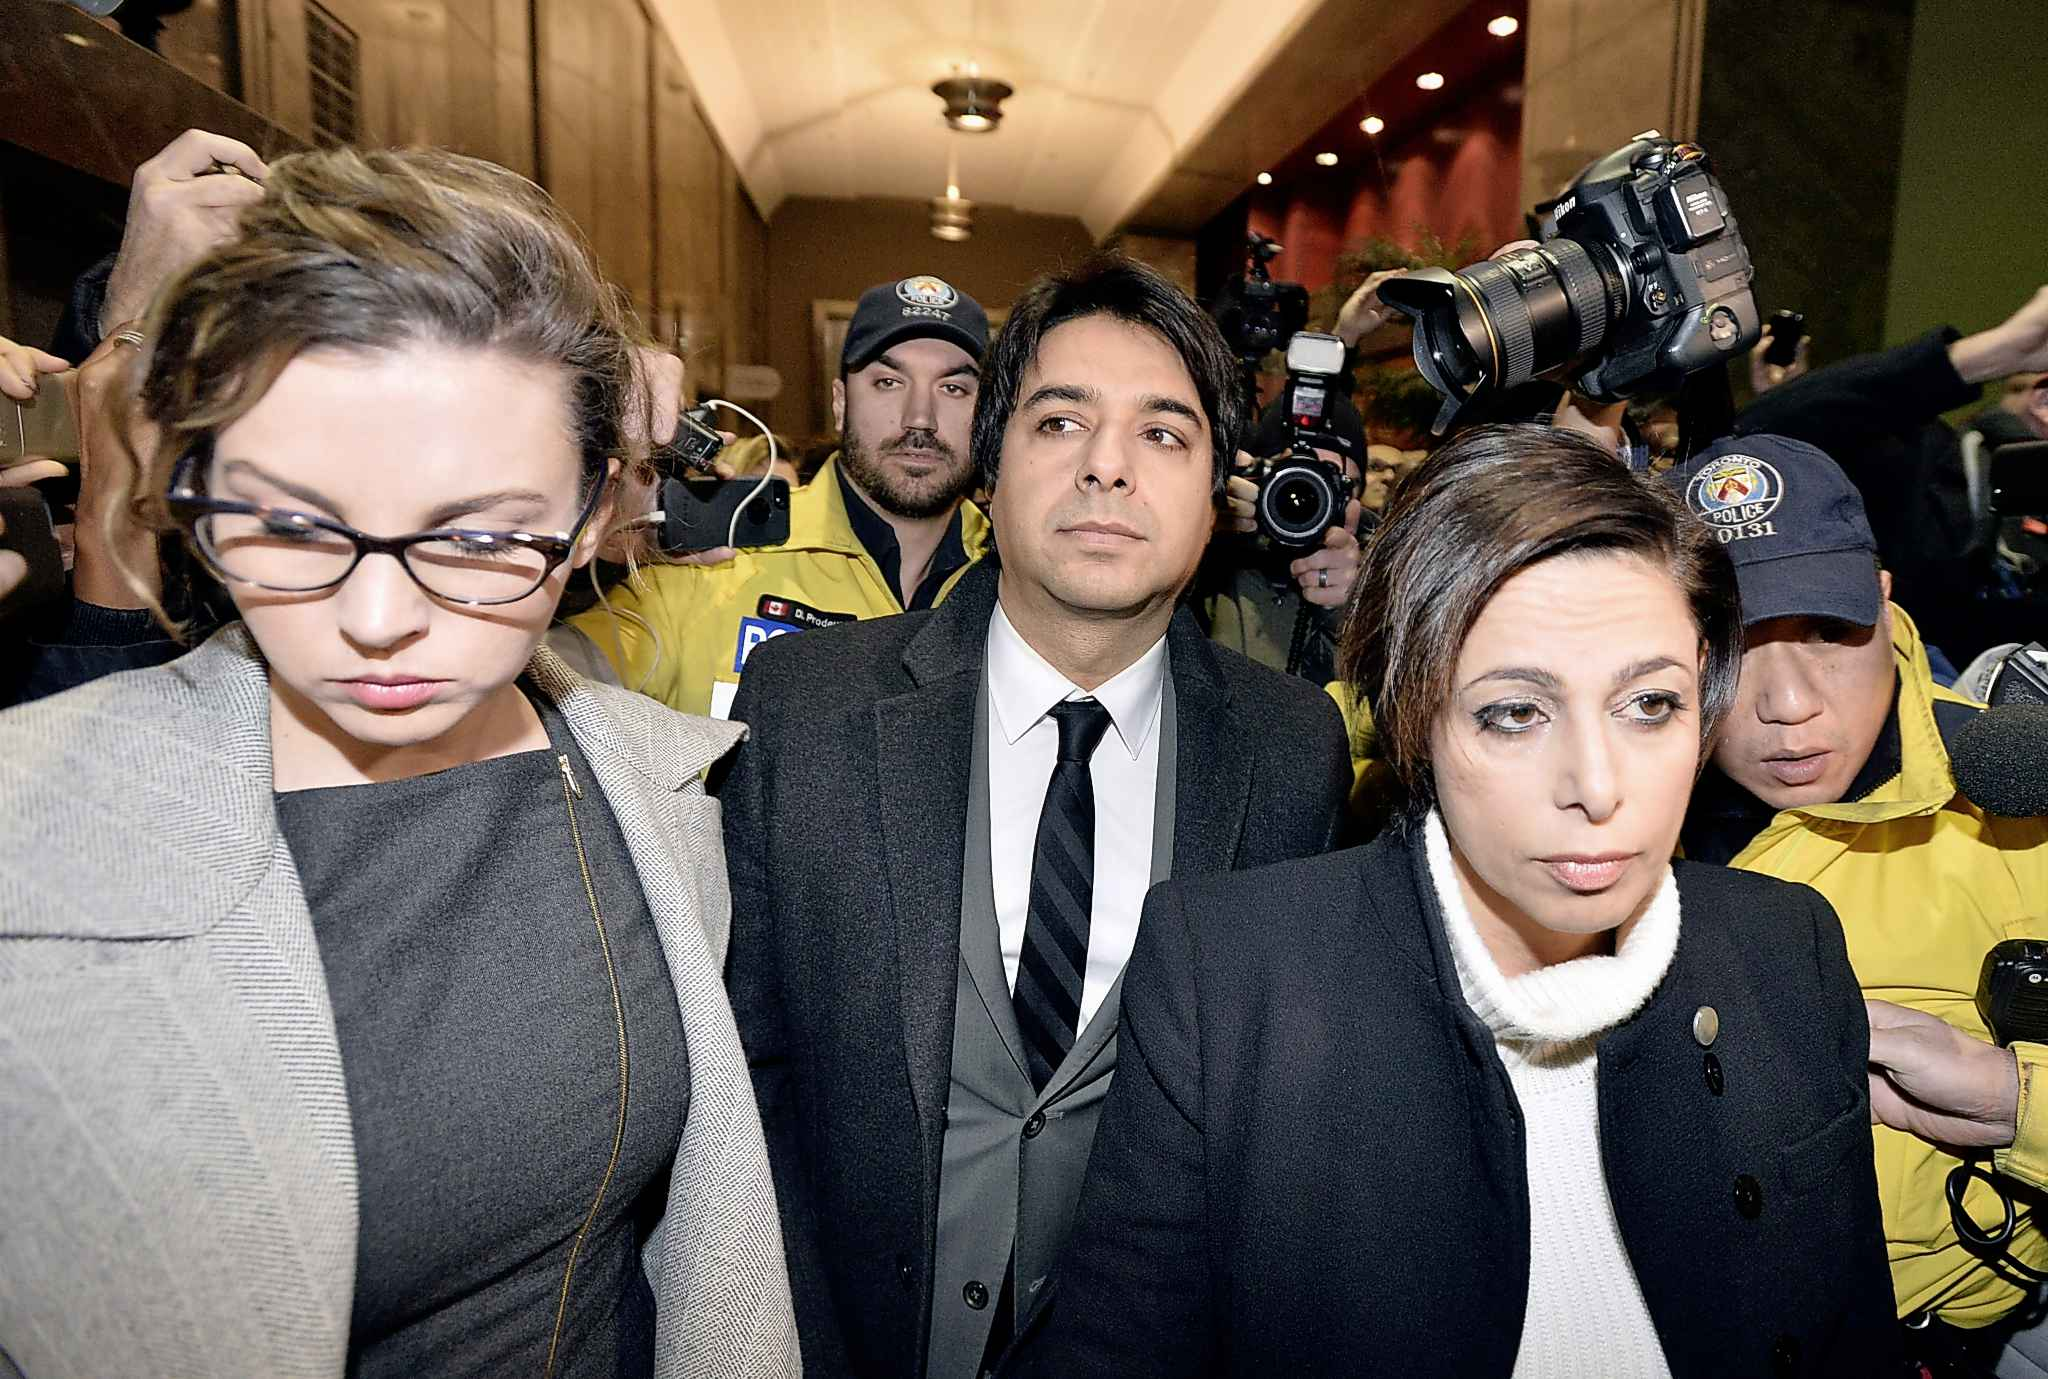 Jian Ghomeshi, centre, and his lawyer Marie Henein, right, leave a Toronto court in 2015.